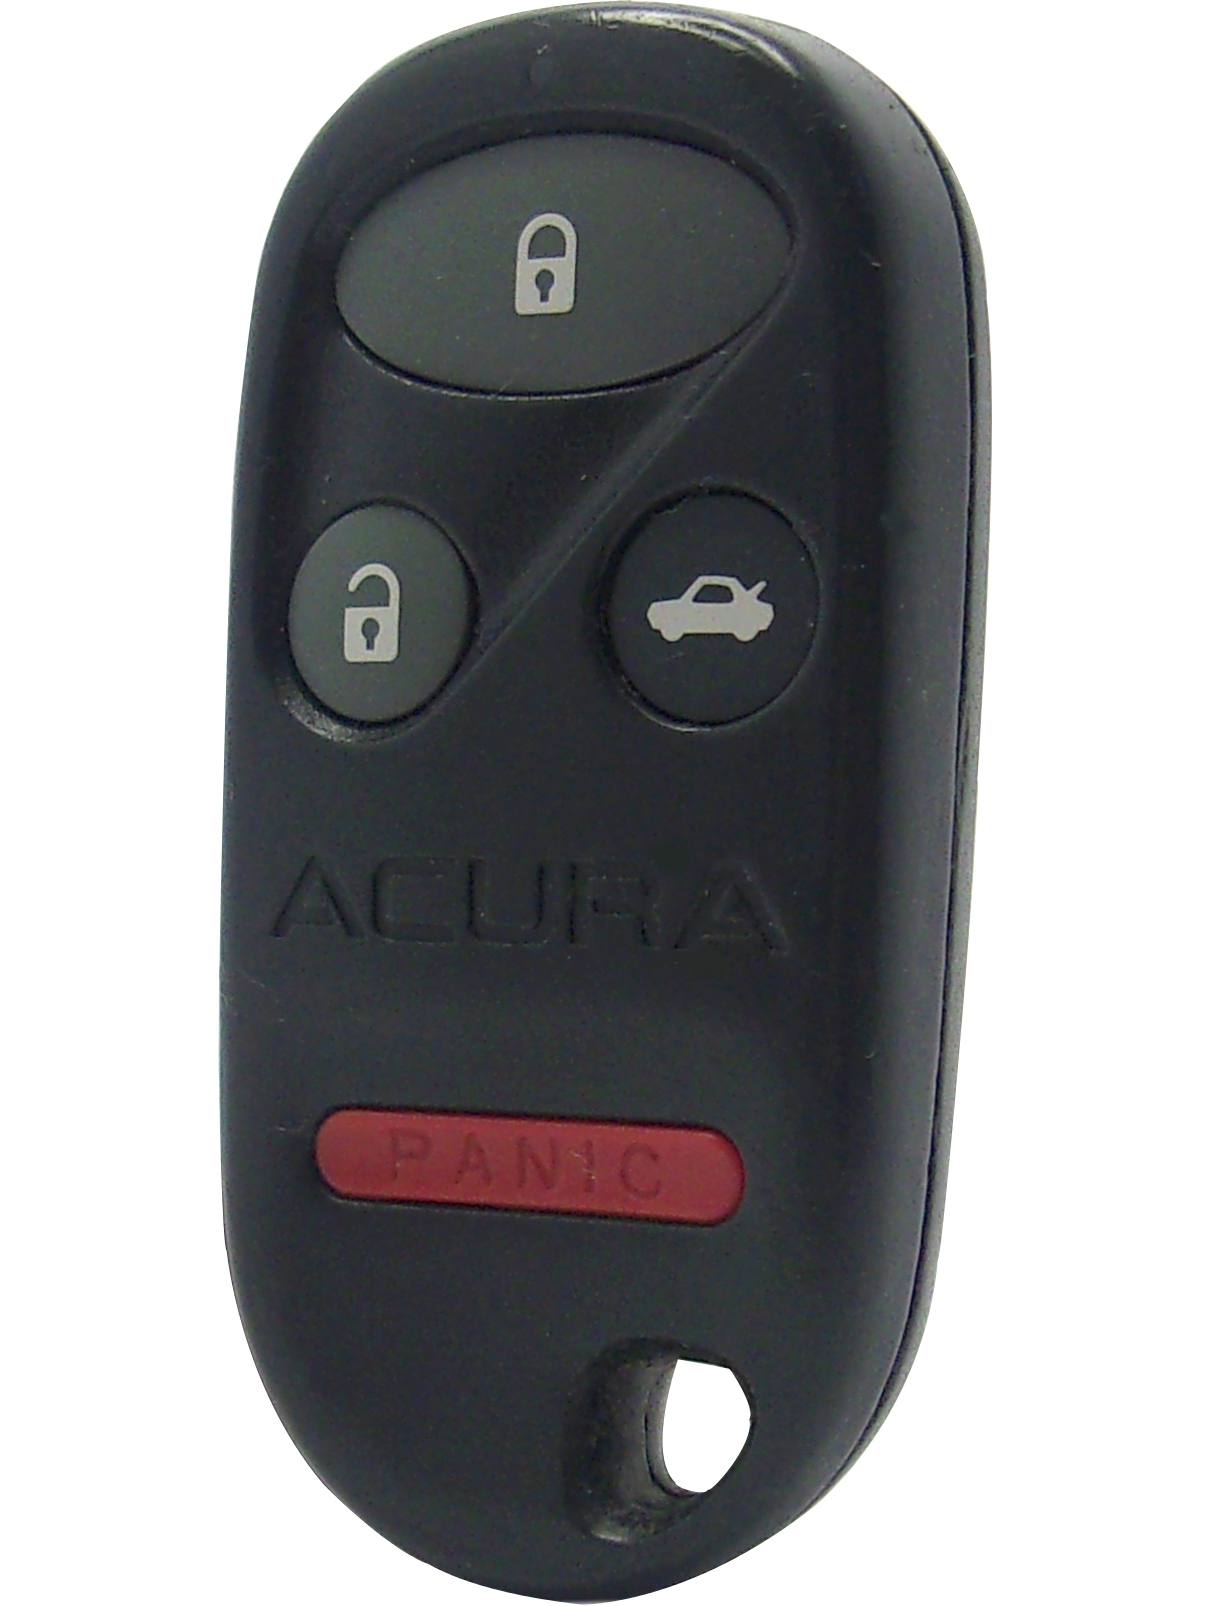 Acura TL Keyless Entry Remote - 4 Button